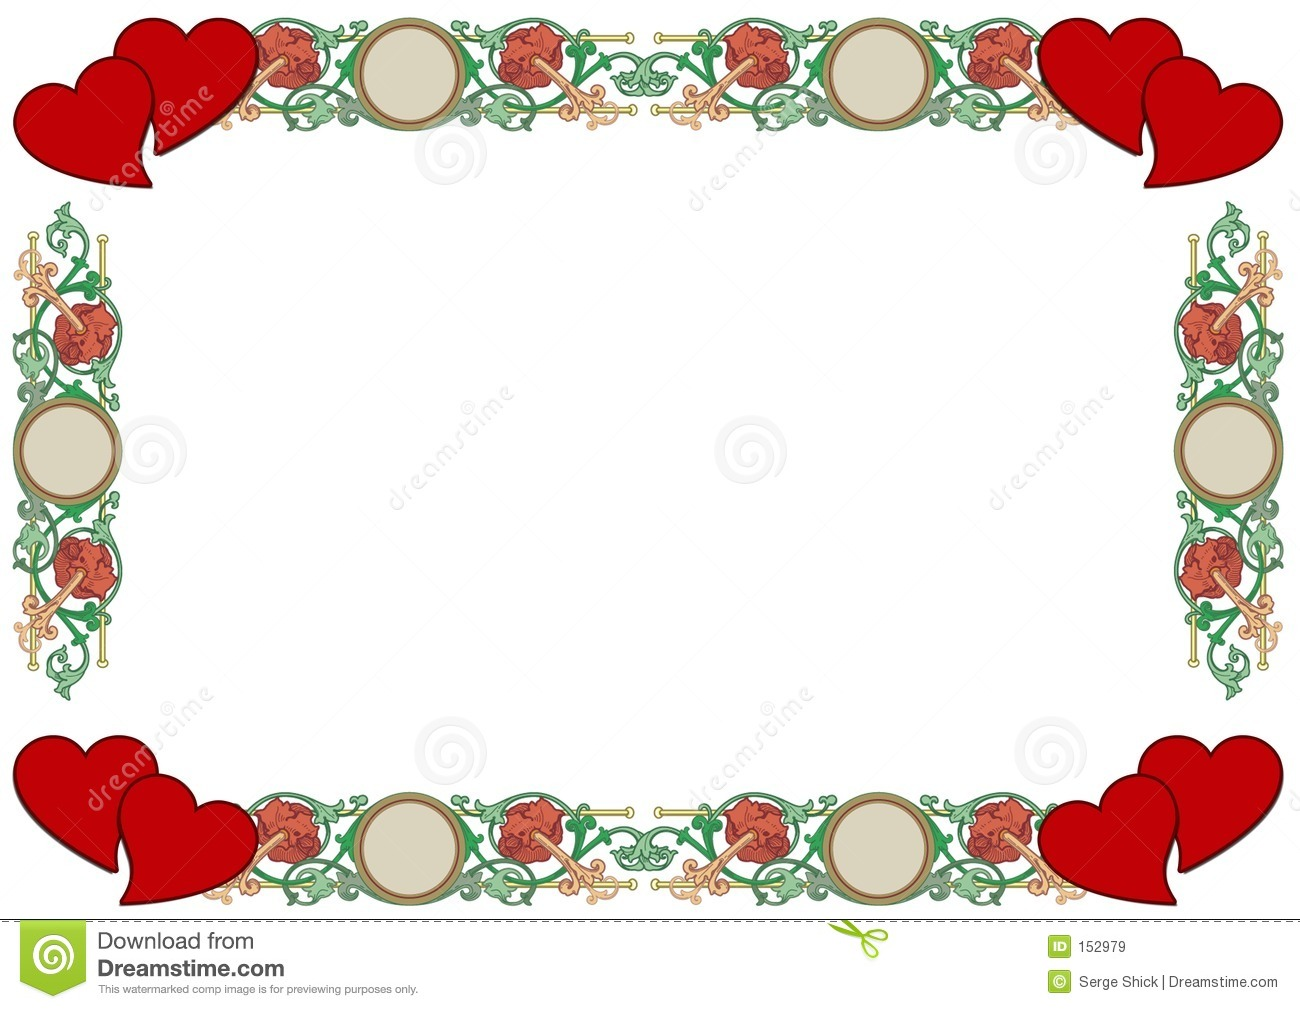 Love Border Royalty Free Stock Images - Image: 152979